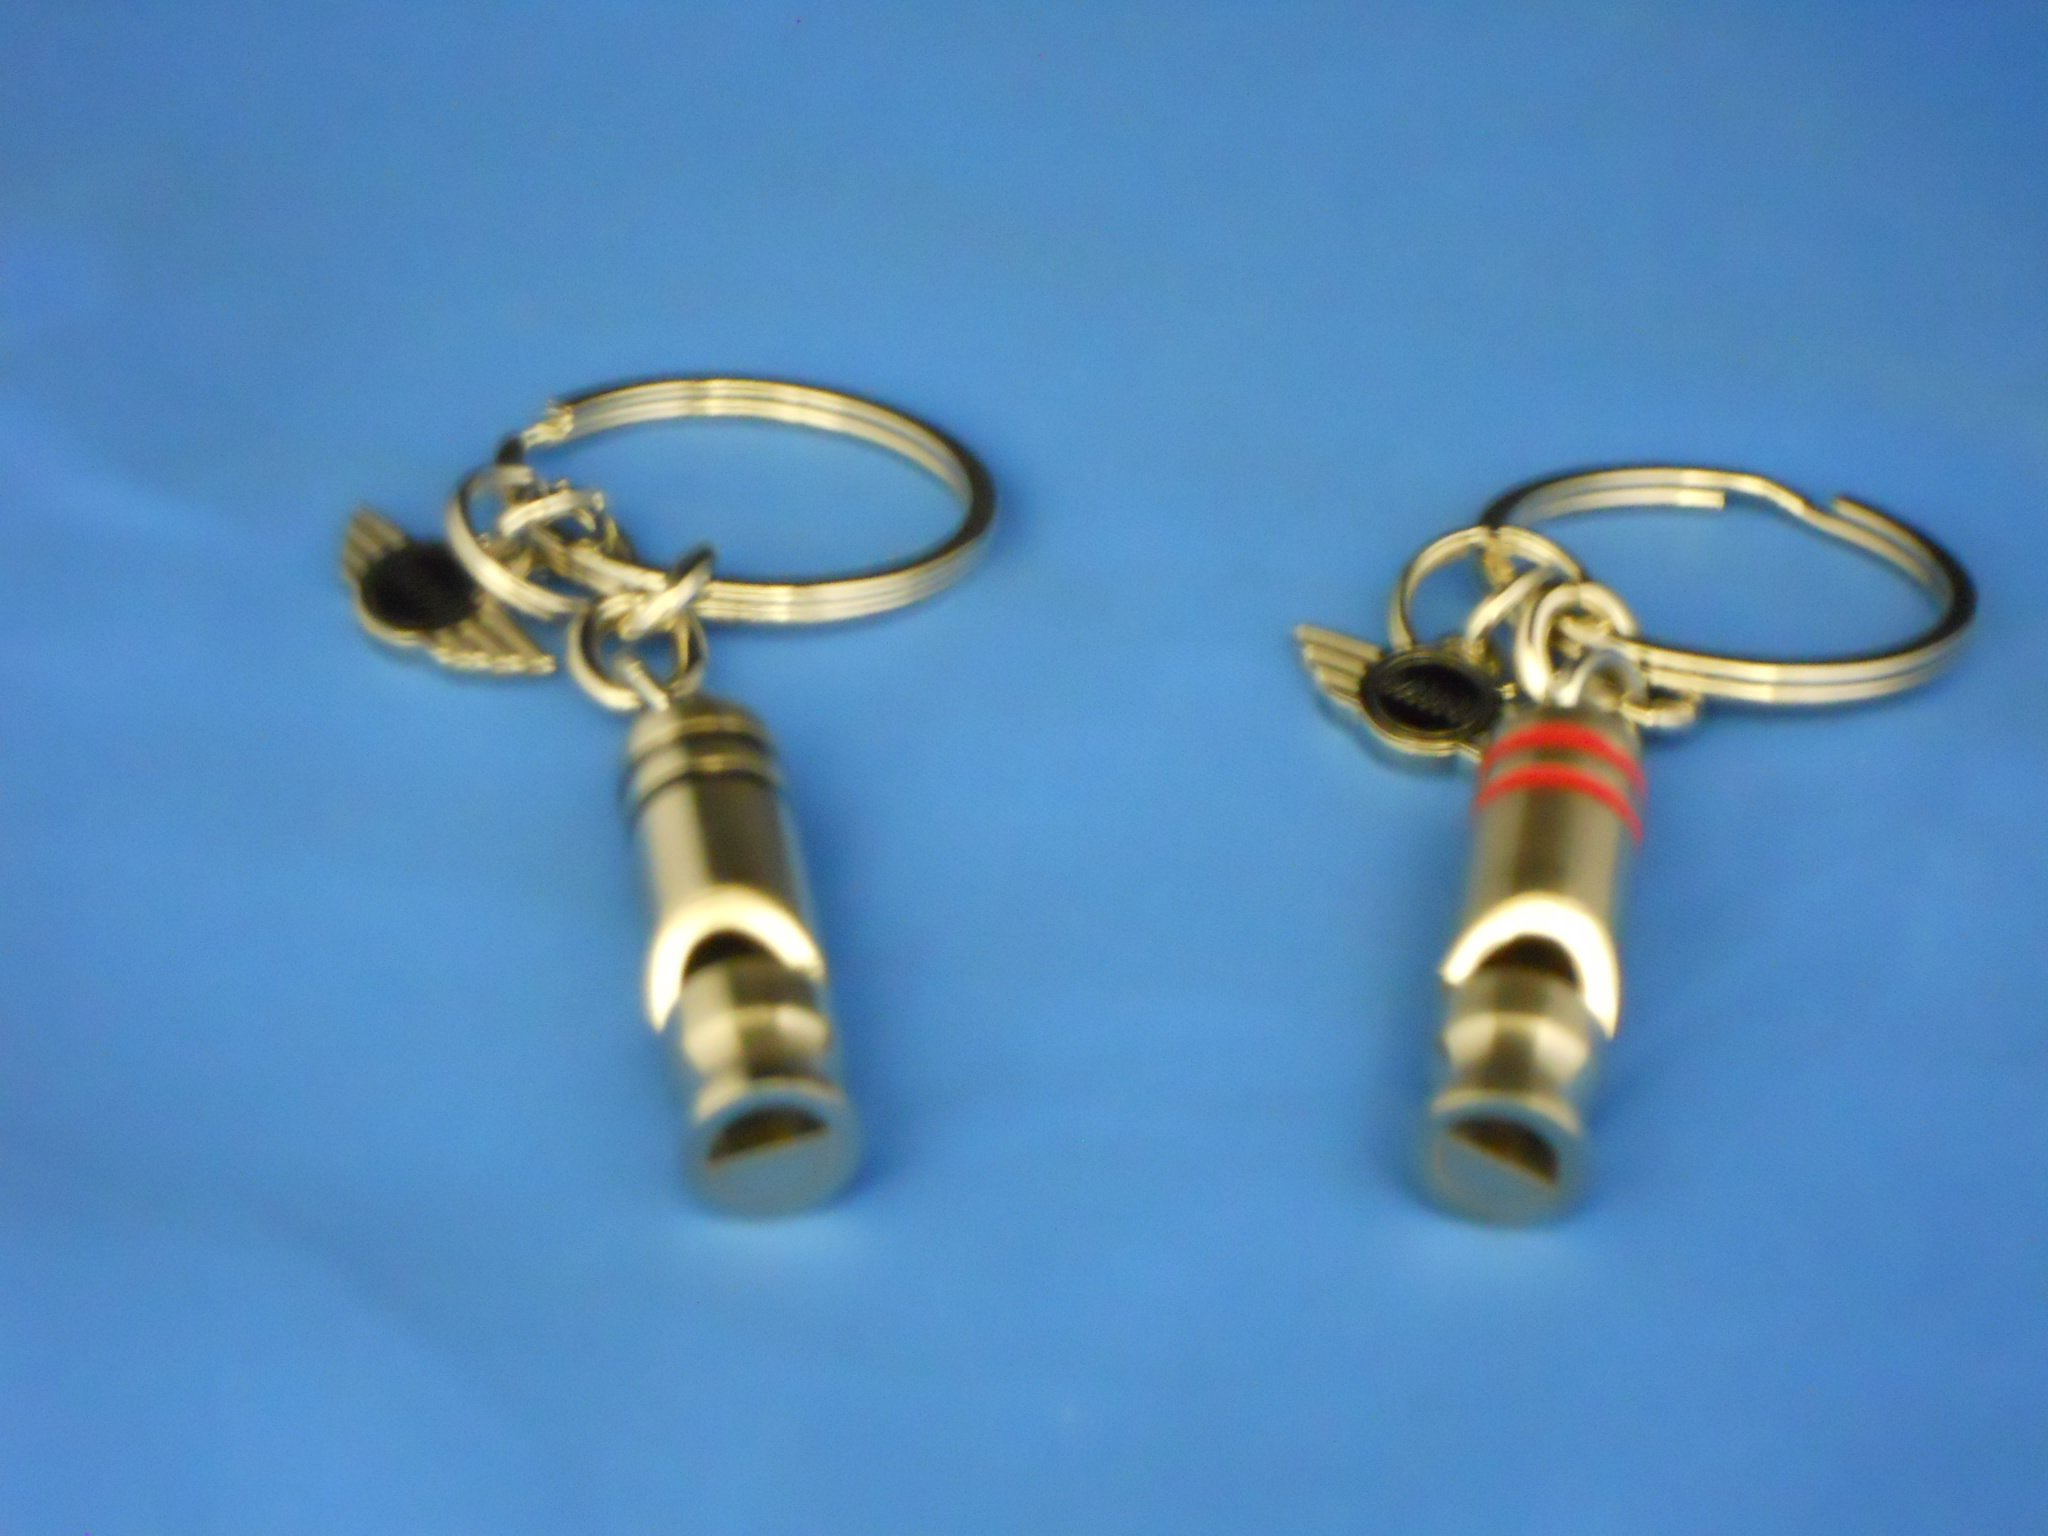 Mini Cooper Metal Wire Cable Keychain with Box